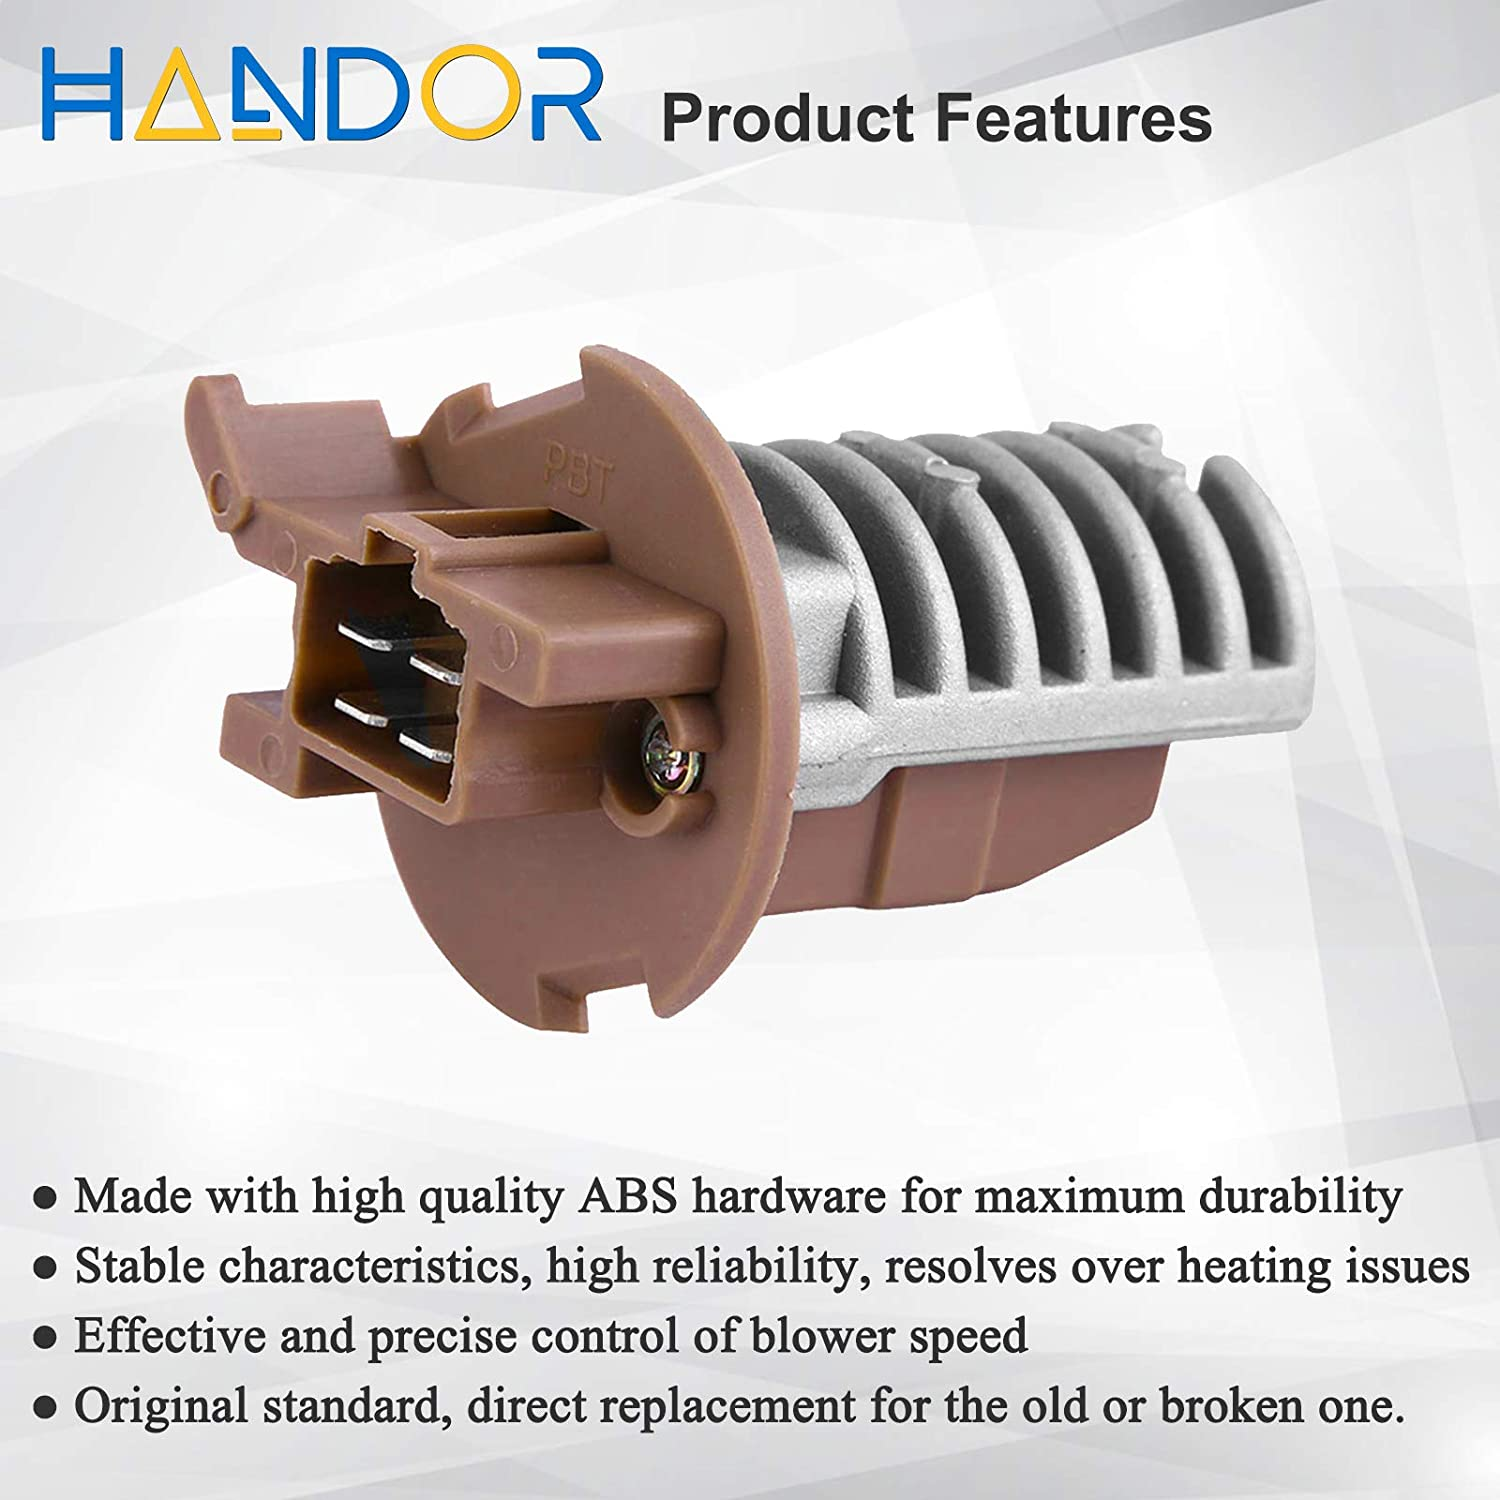 Handor Rear A//C Heater Blower Motor Resistor Compatible with Honda Pilot 2003-2008 Acura MDX 2001-2006 Replacement # JA1626 RU364 79330-S3V-A51 973-548